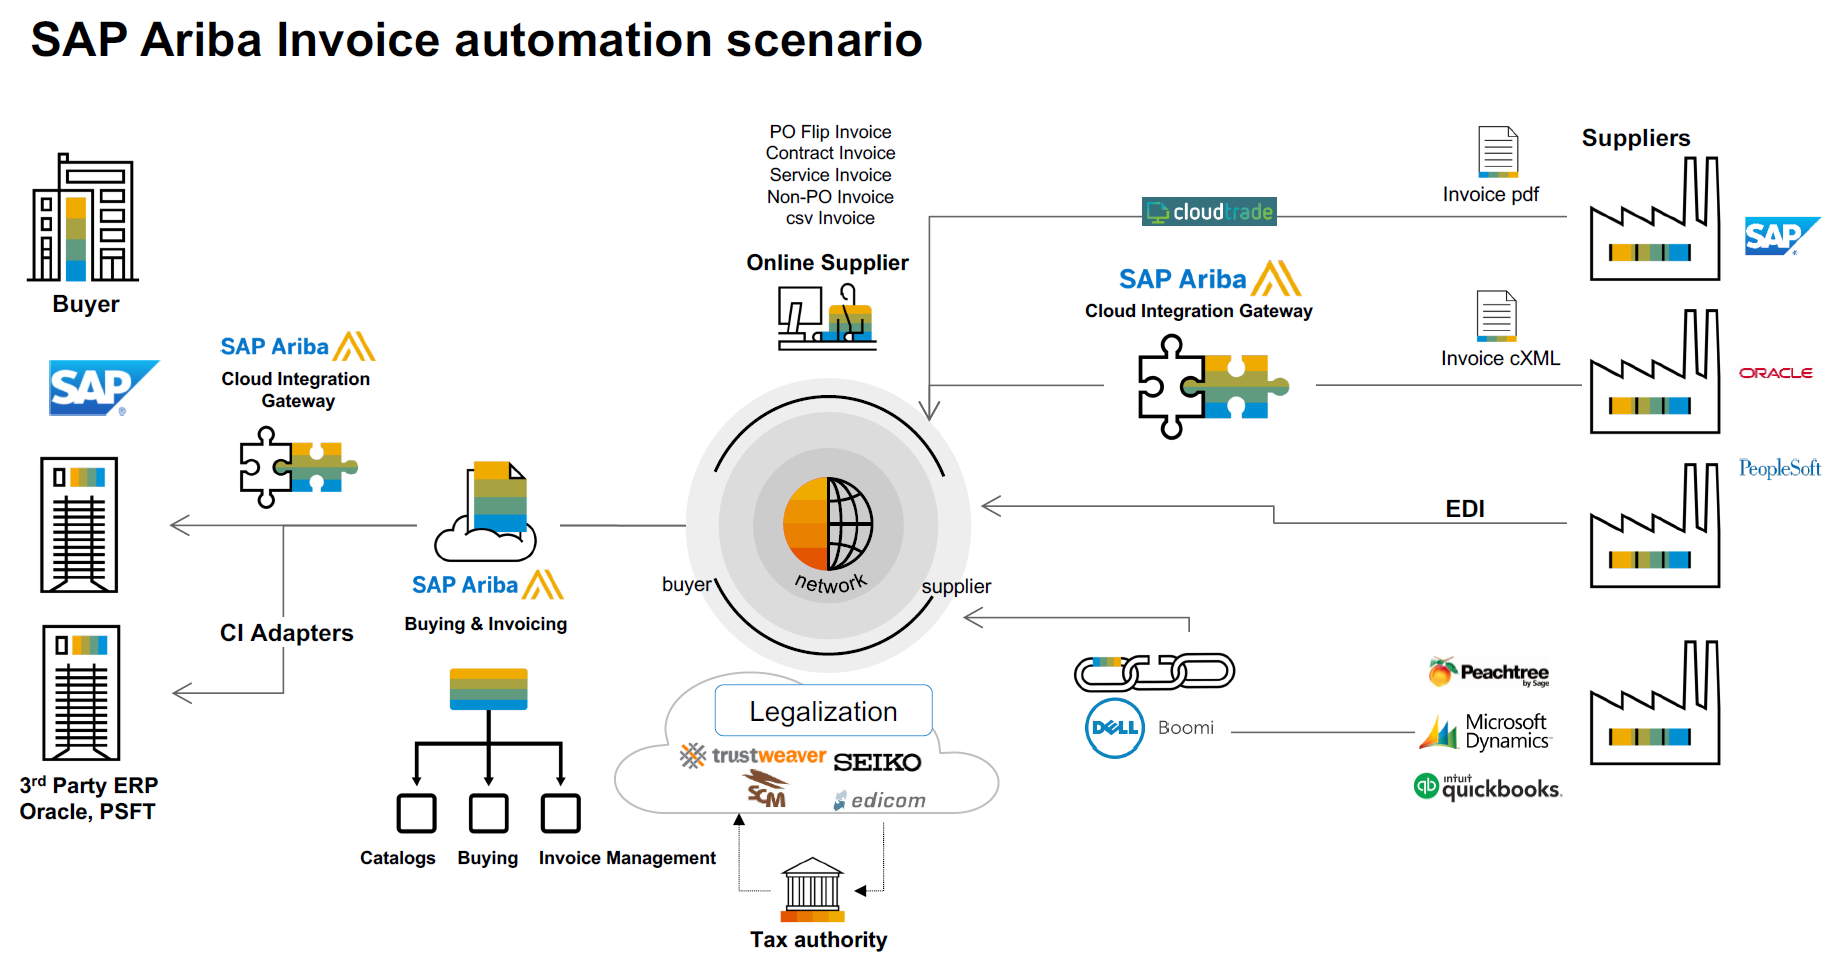 Electronic Invoice Management in SAP Ariba - Compera Consulting